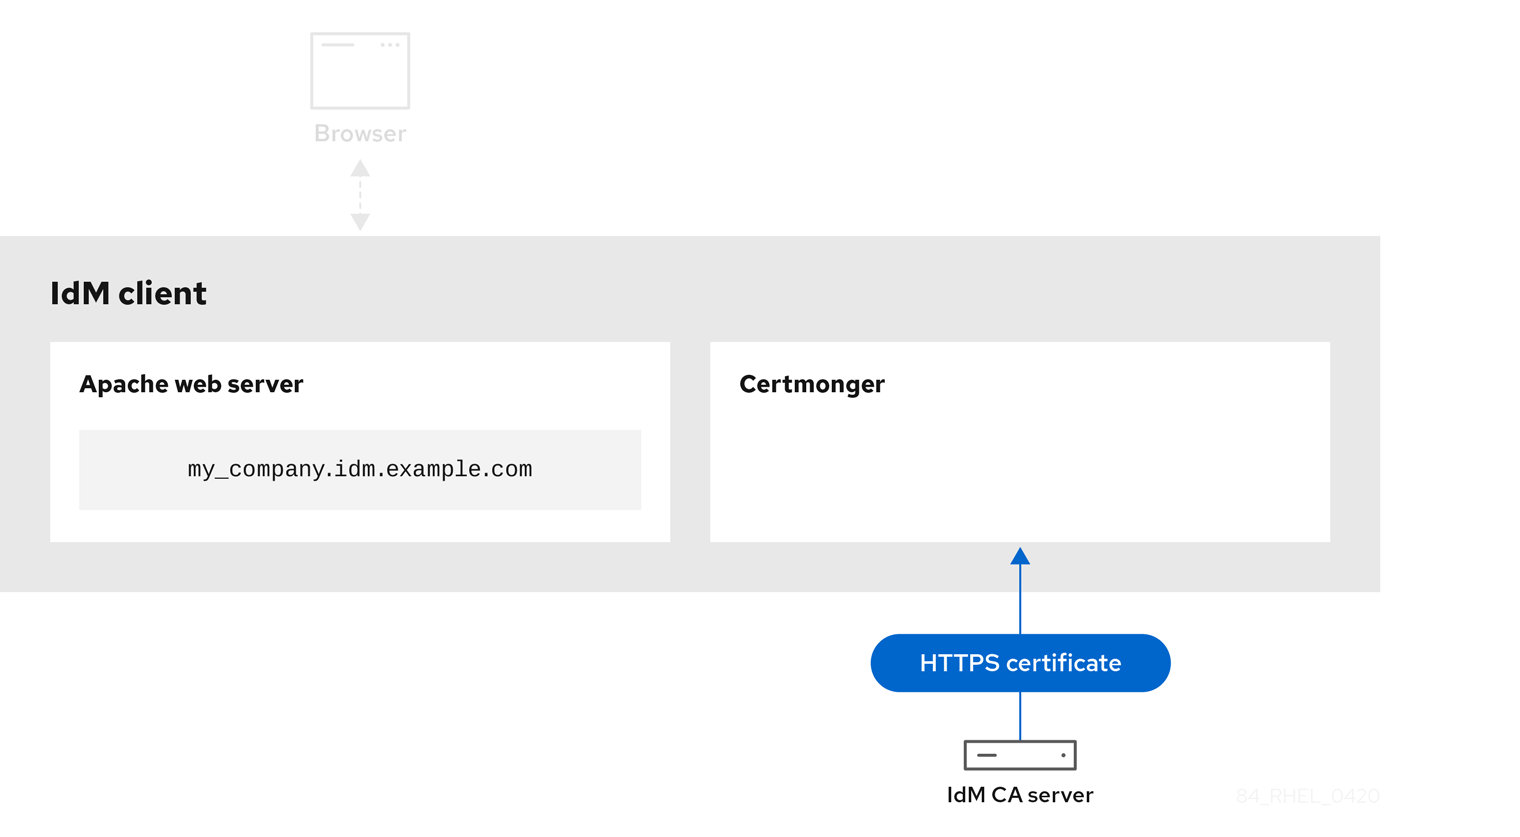 A diagram displaying an arrow between the IdM CA server and the certmonger service on the IdM client - showing it is connecting and sending an HTTPS certificate.